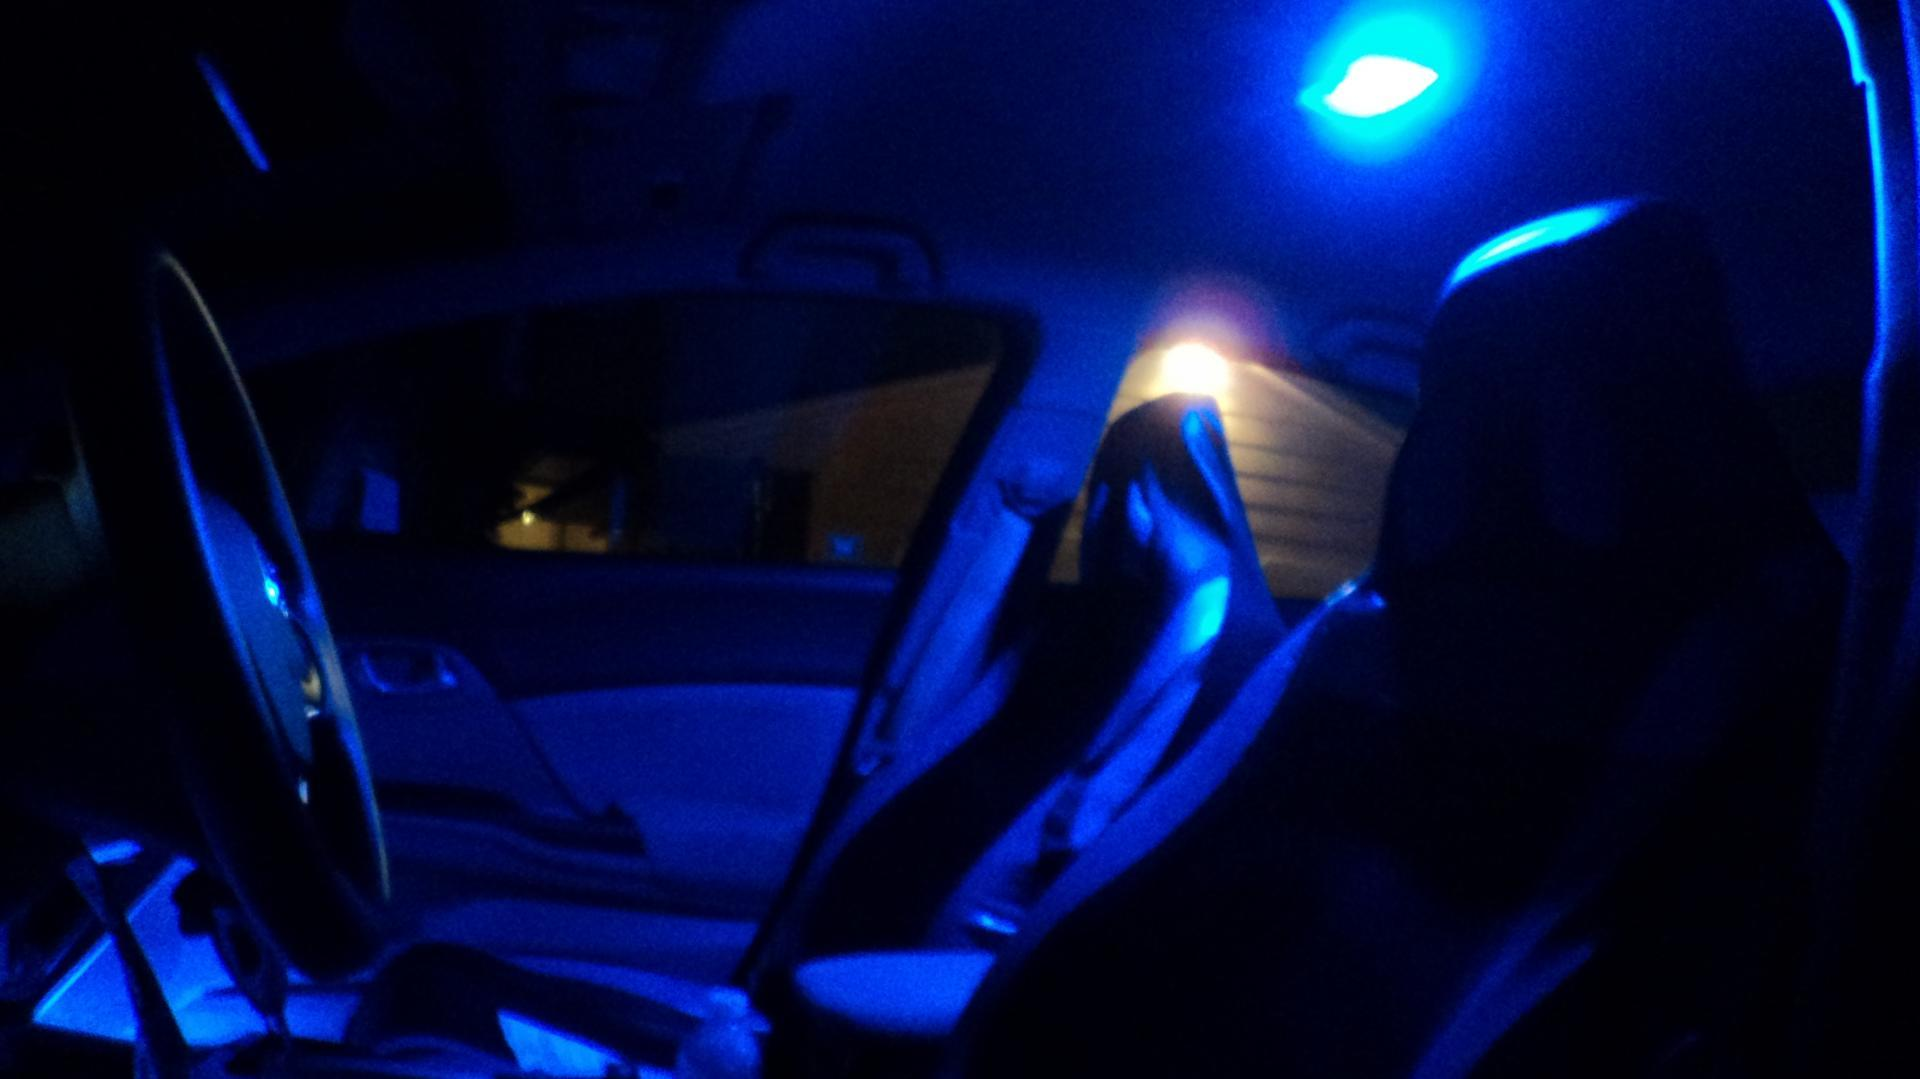 5 simple yet awesome car modifications automotive blog for Led glow interior lights installation